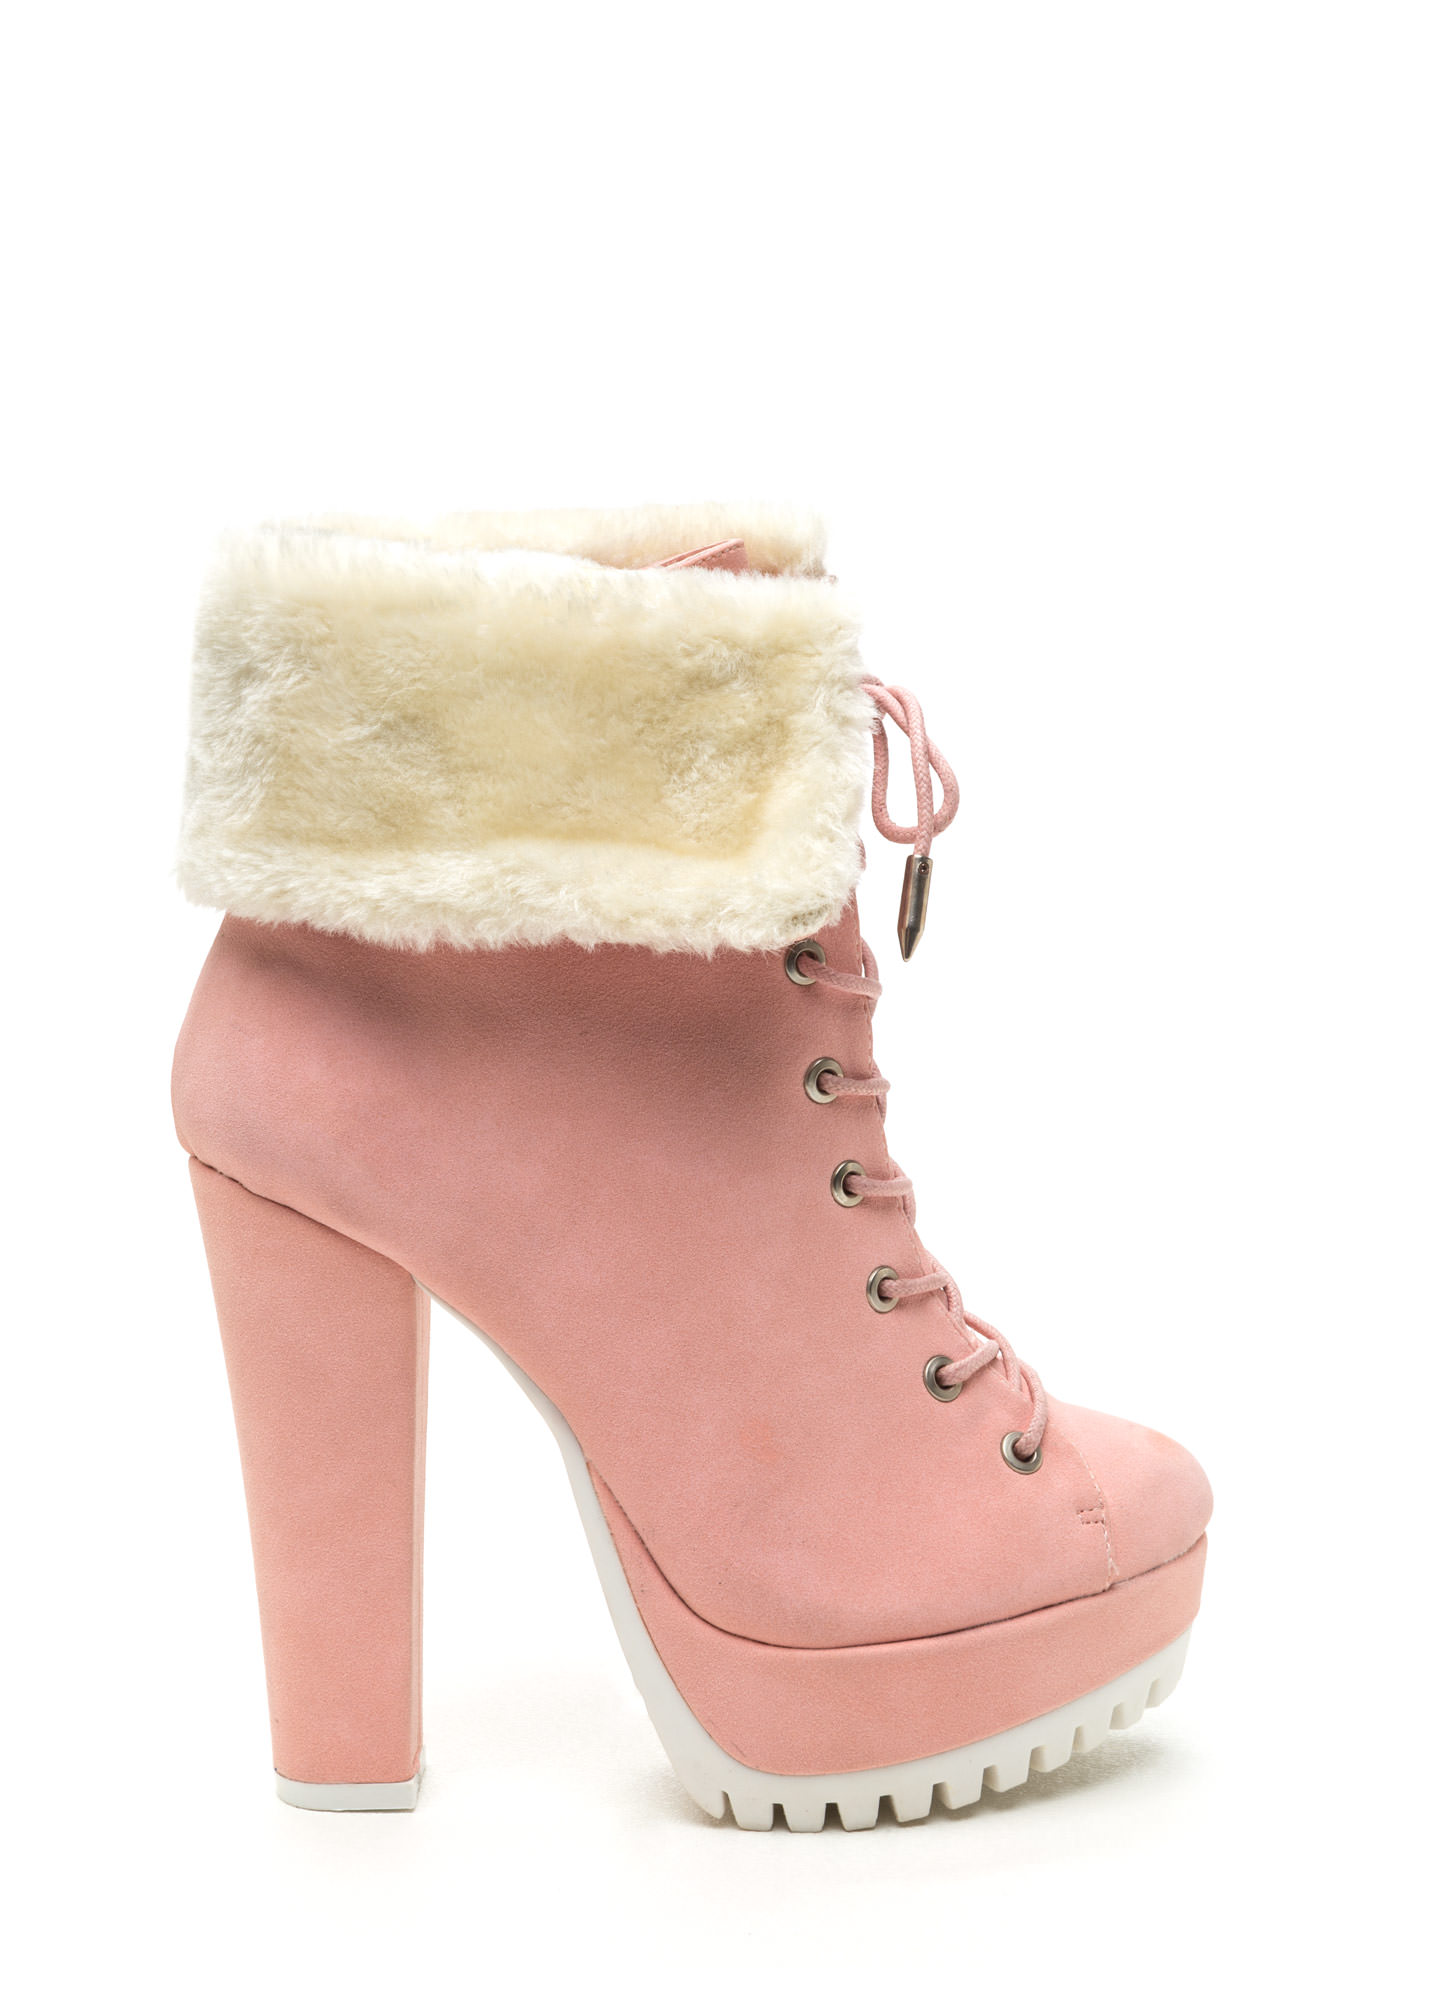 Pink Booties Heels - Is Heel